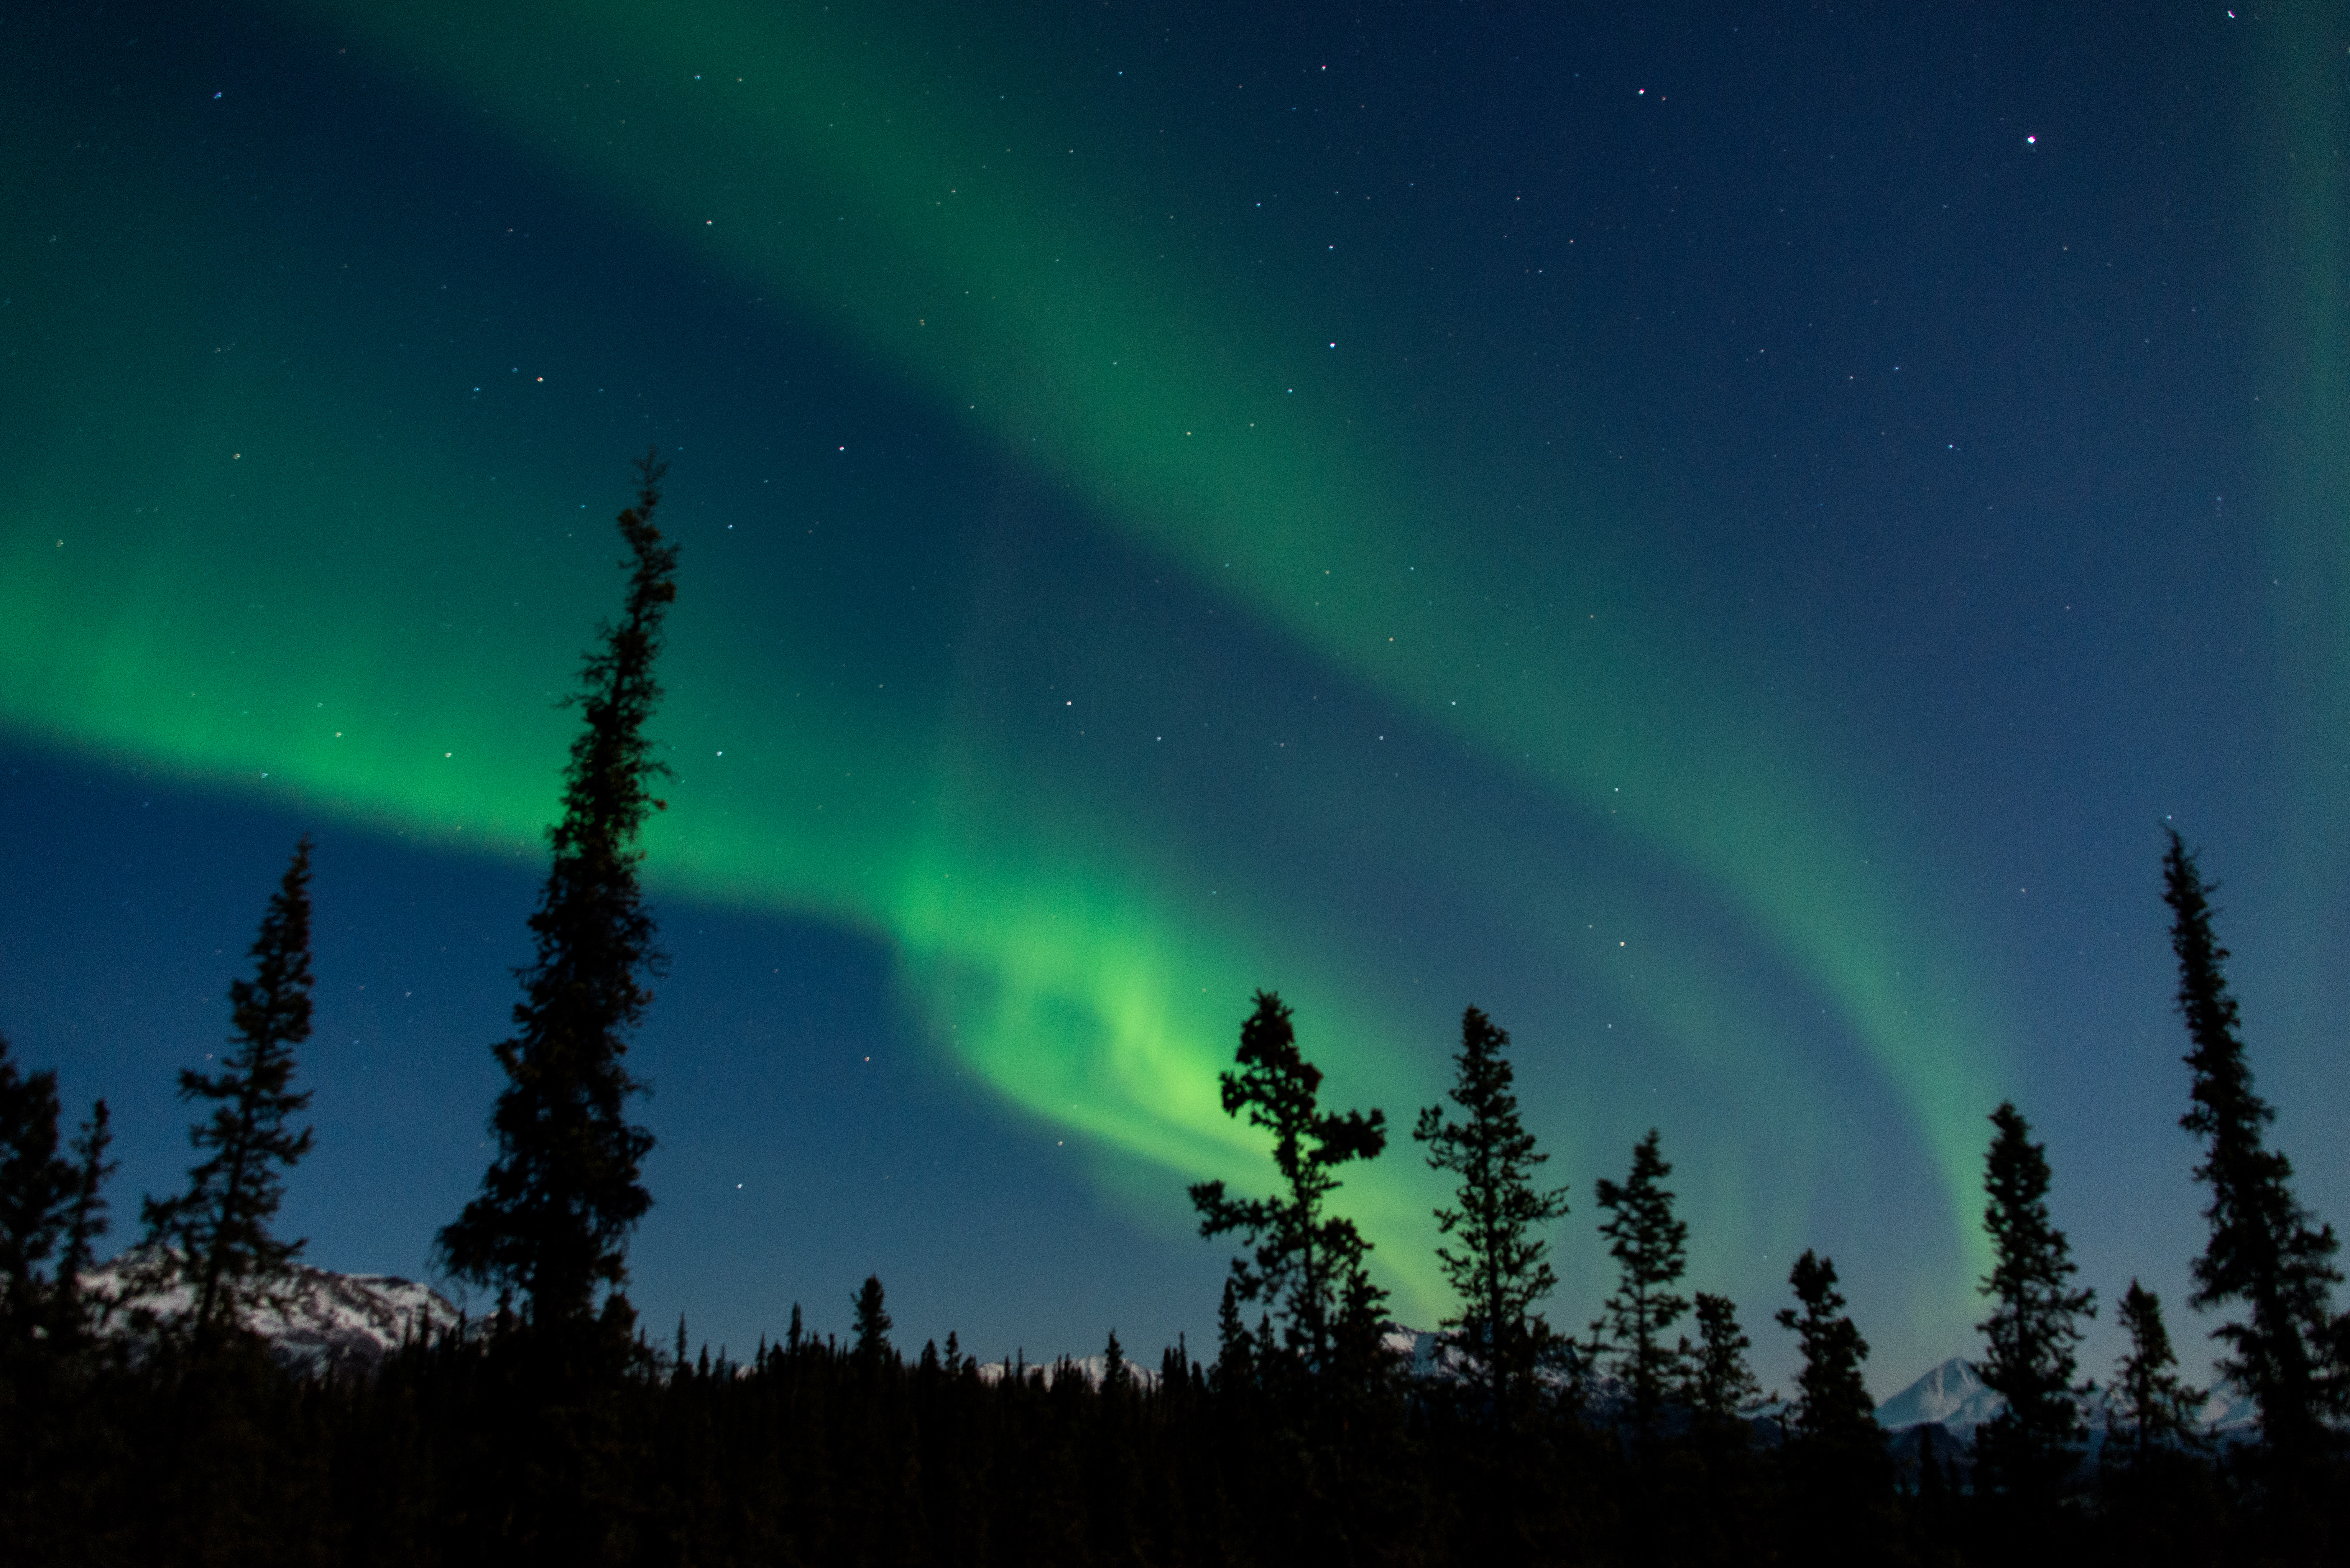 Two Ribbons Of Greenish Light In A Dark Blue Sky Over A Very Dark Forest